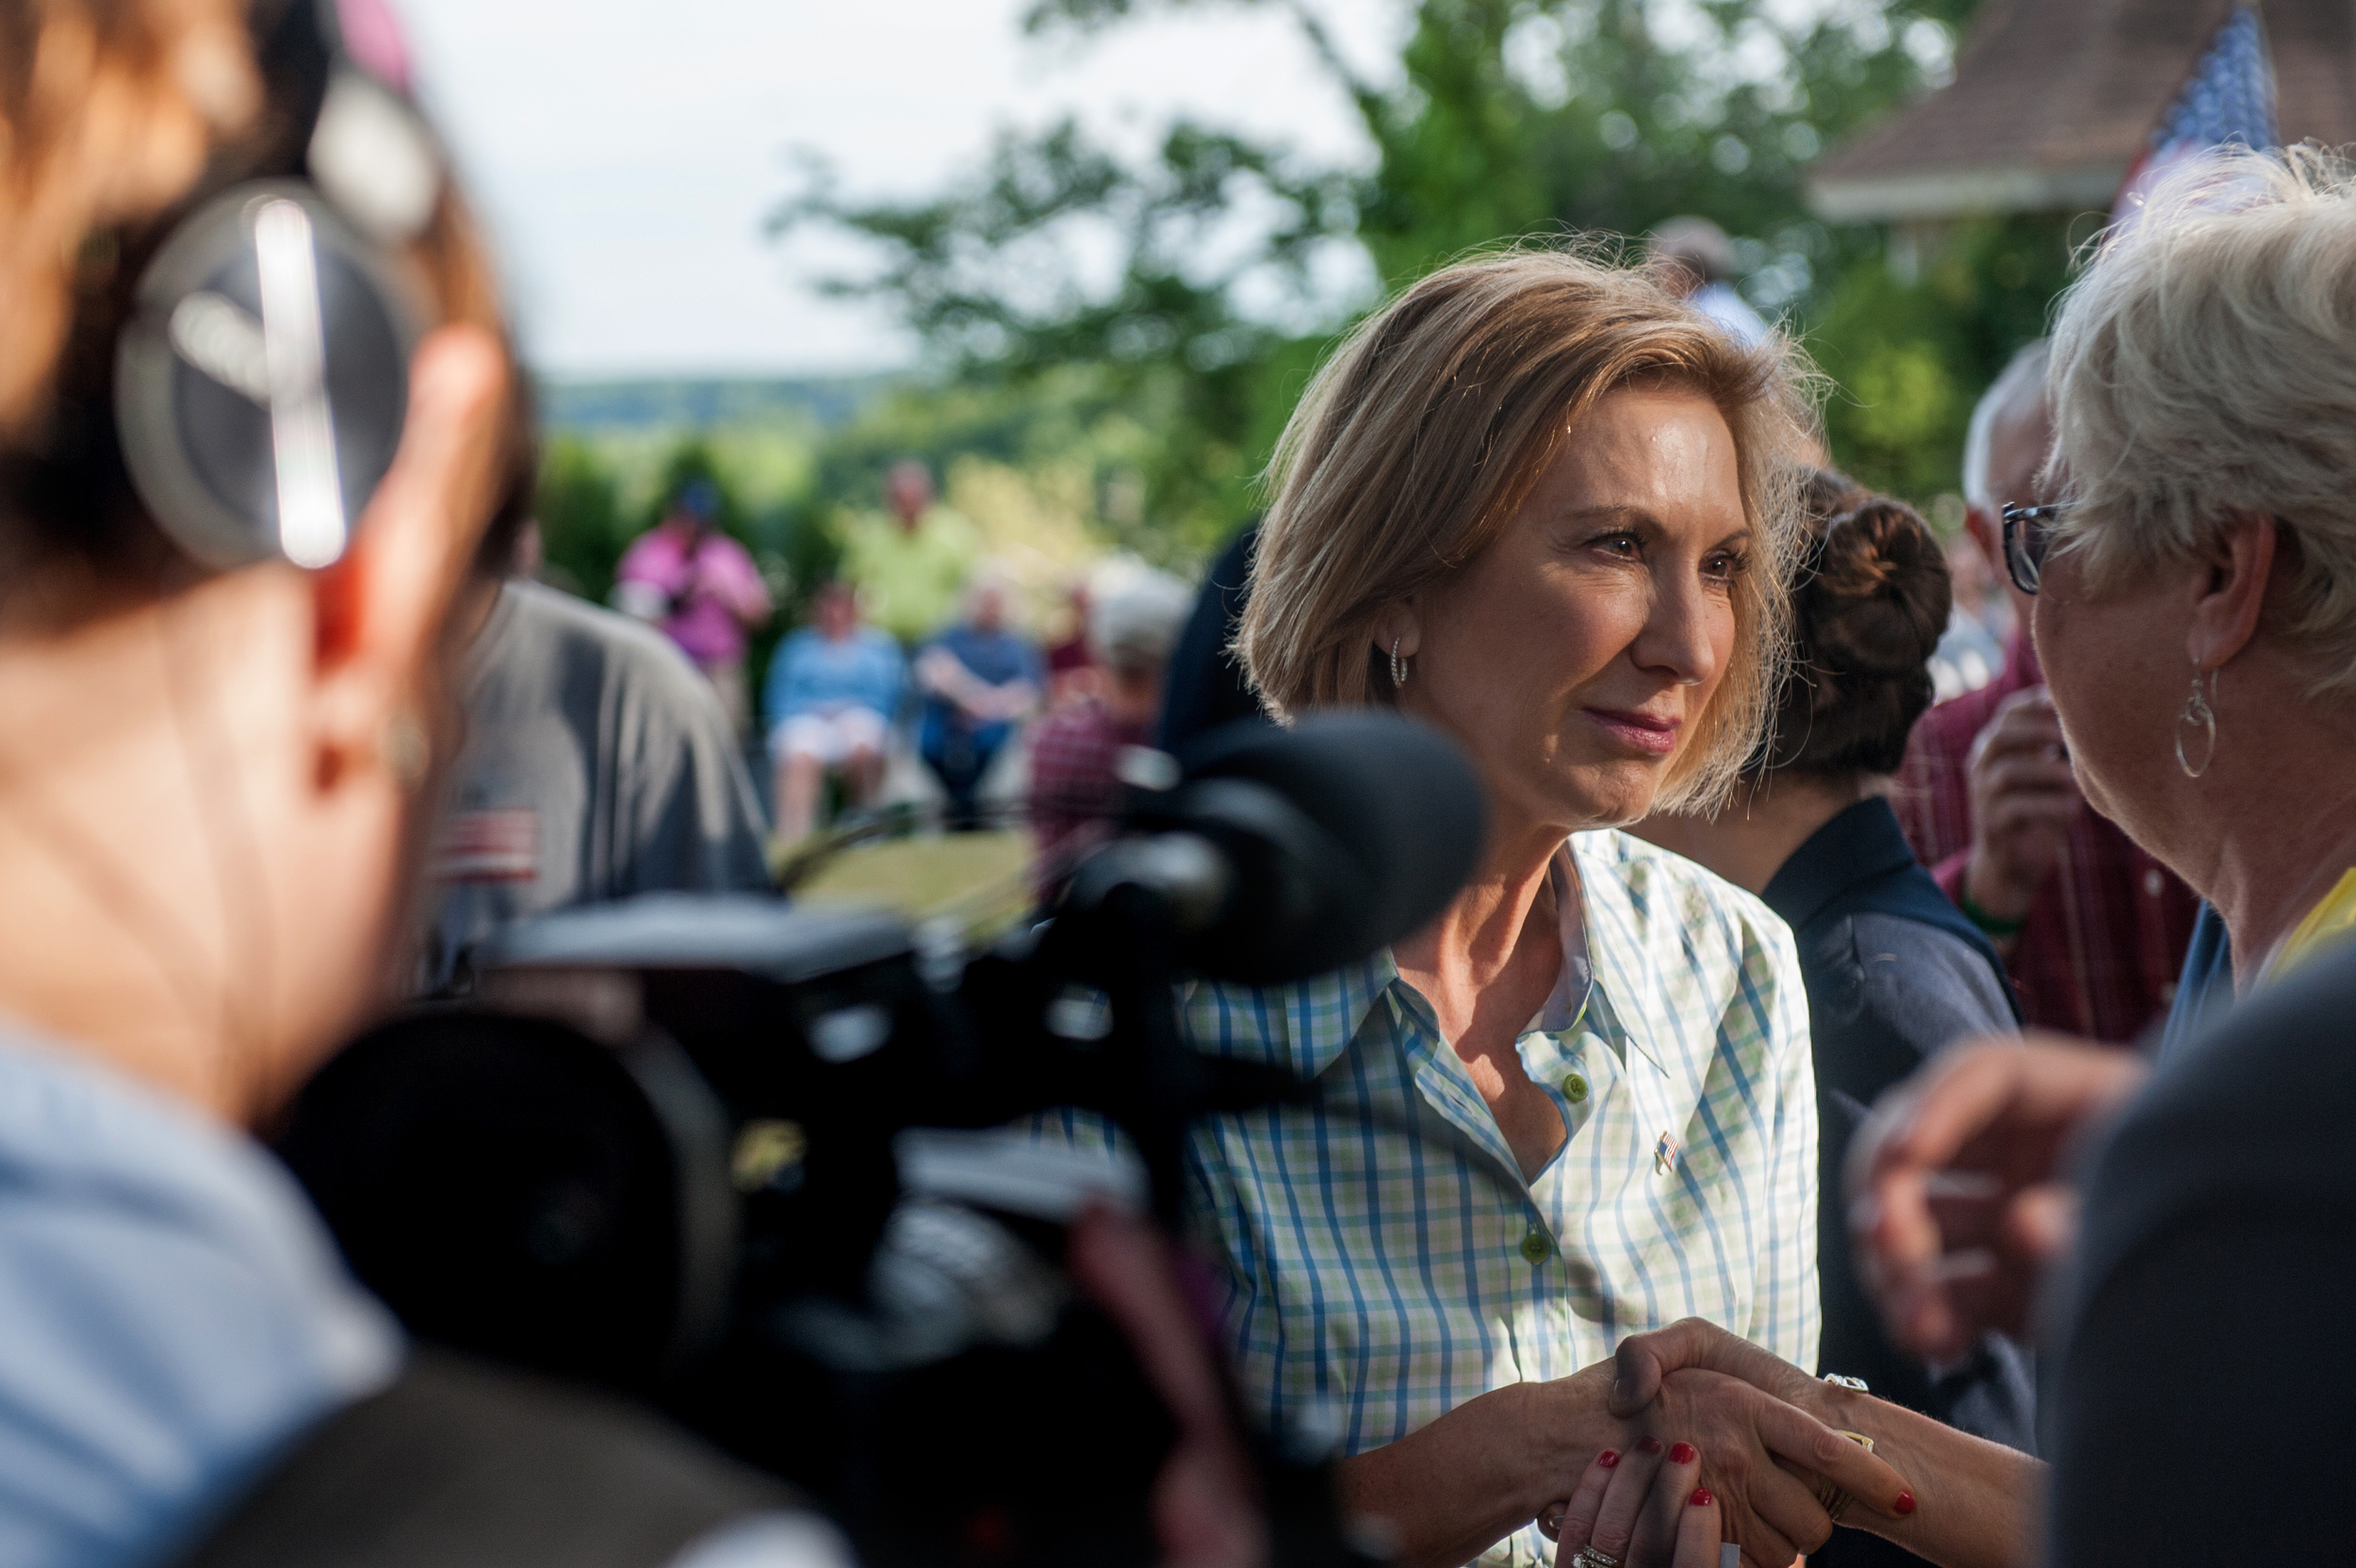 Media and GOP voters in New Hampshire showed renewed attention to presidential candidate Carly Fiorina whose poll numbers and crowds are up after personal attacks from frontrunner Donald Trump.